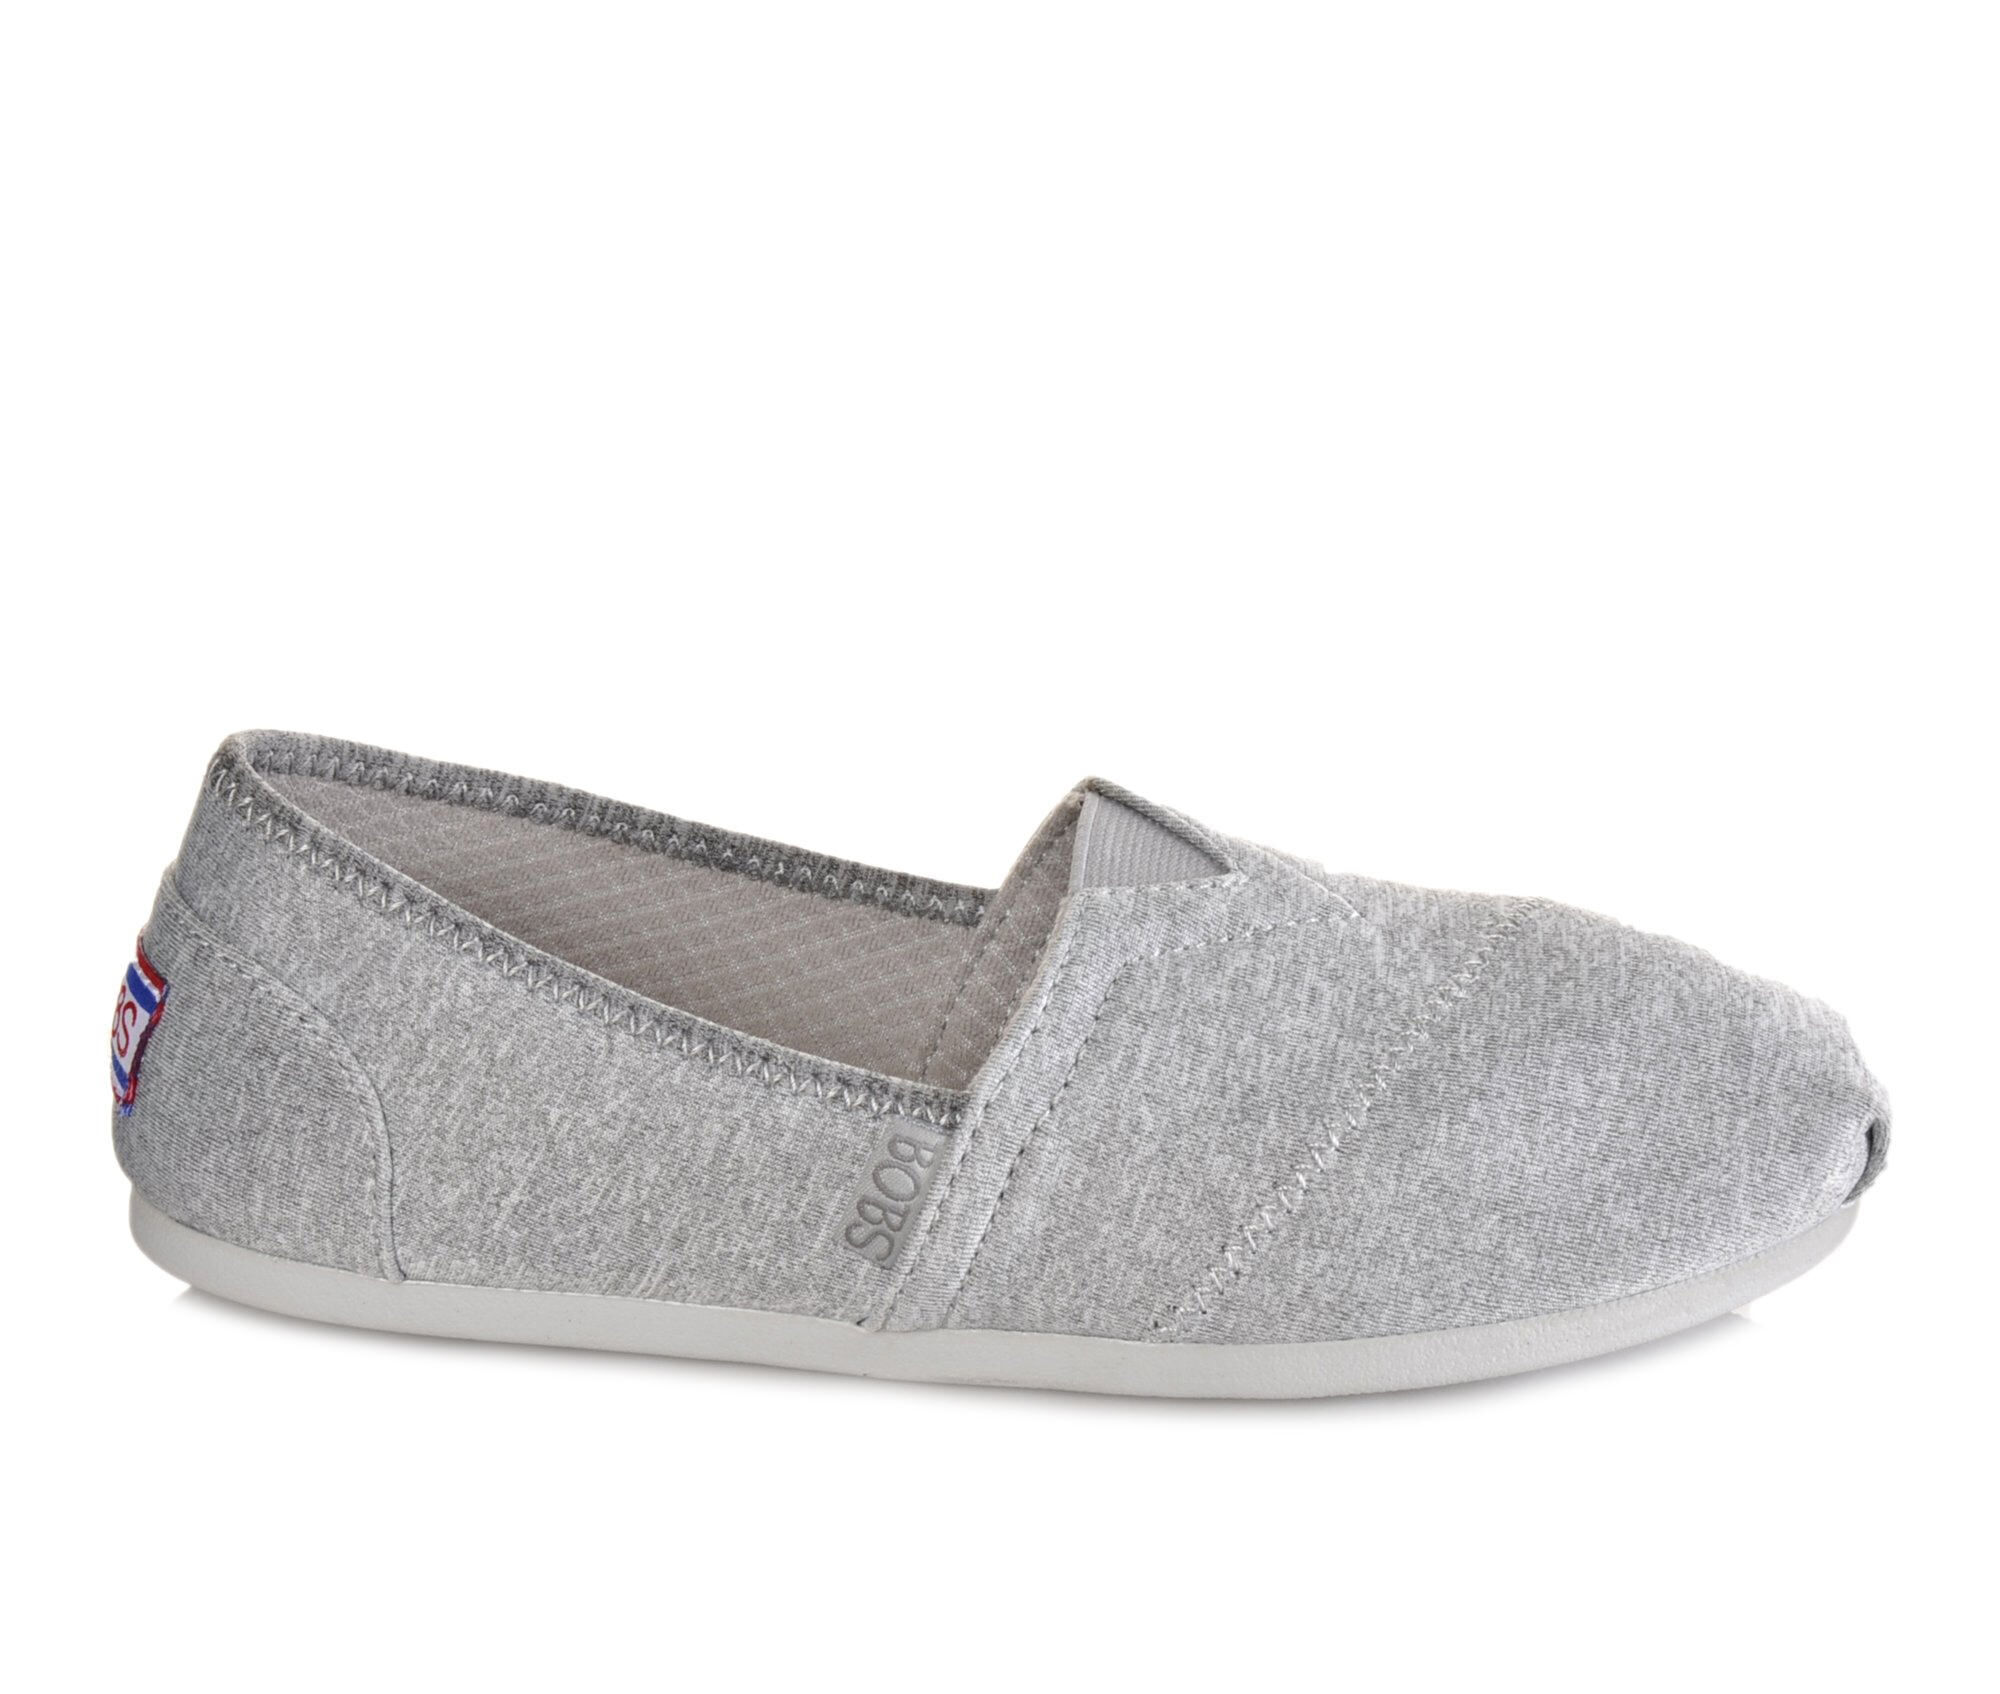 choose new style Women's BOBS Express Yourself 33910 Slip-Ons Gray